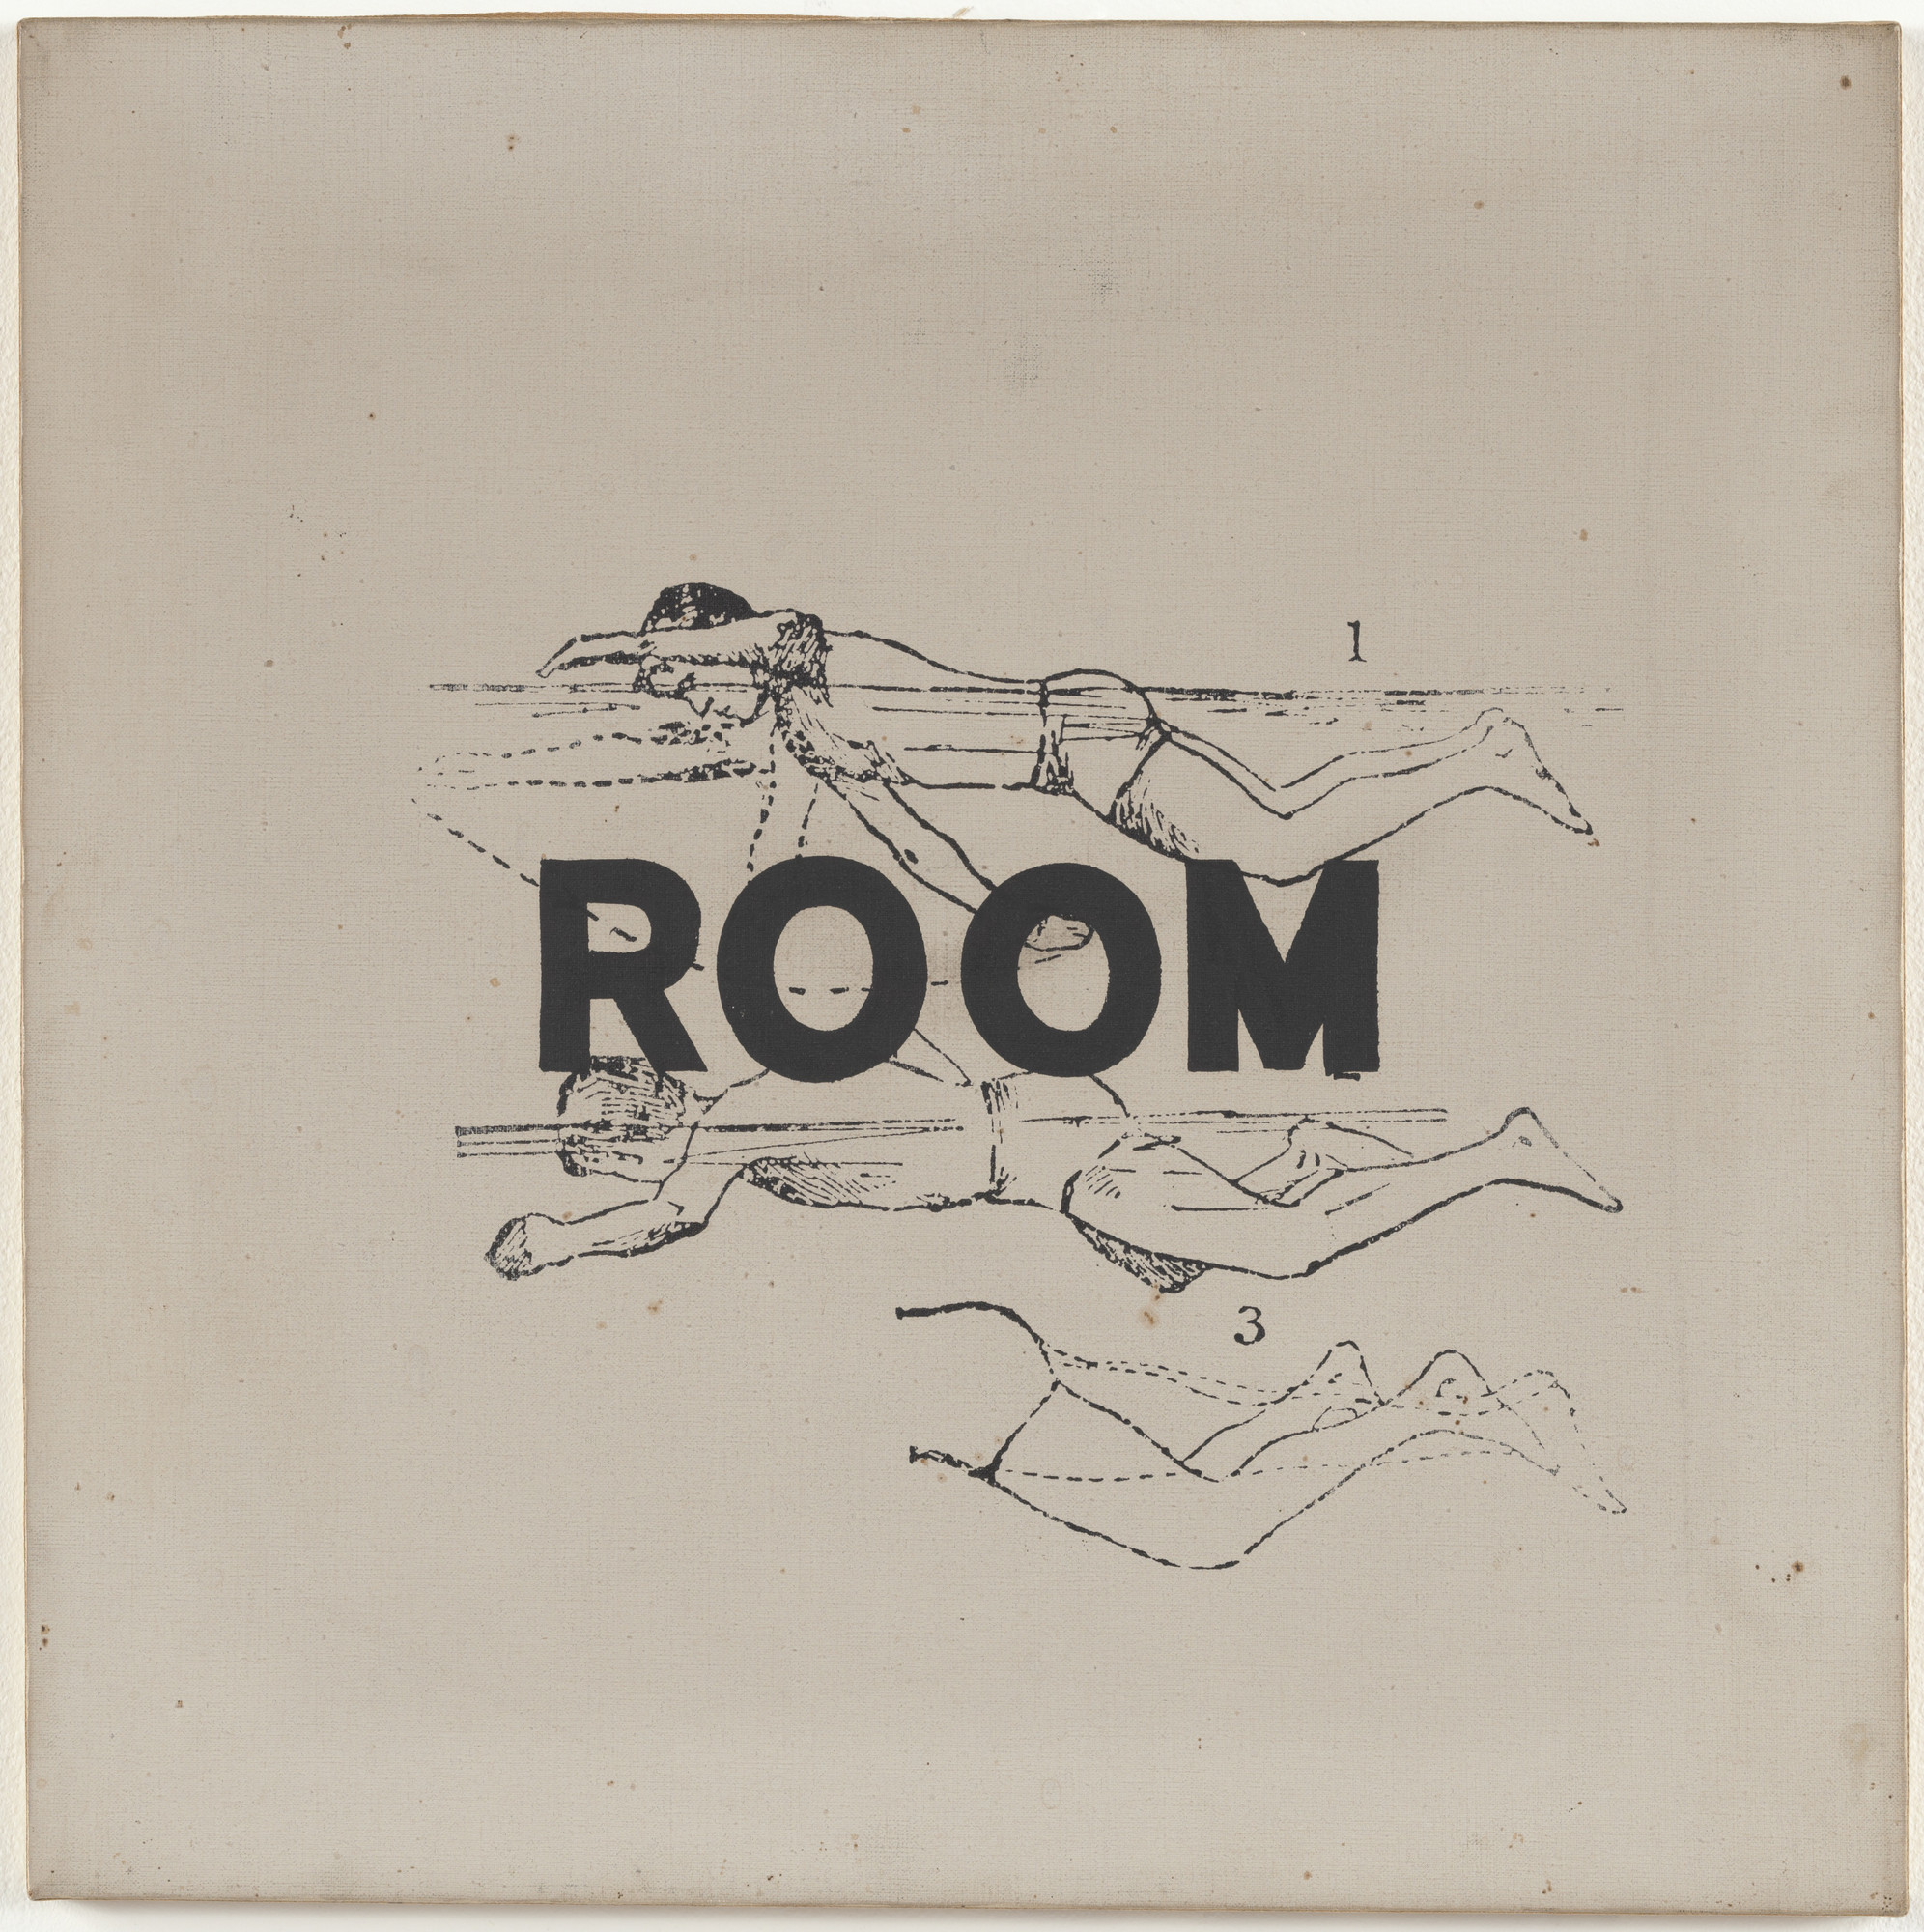 George Brecht, Alison Knowles. Room. c. 1960